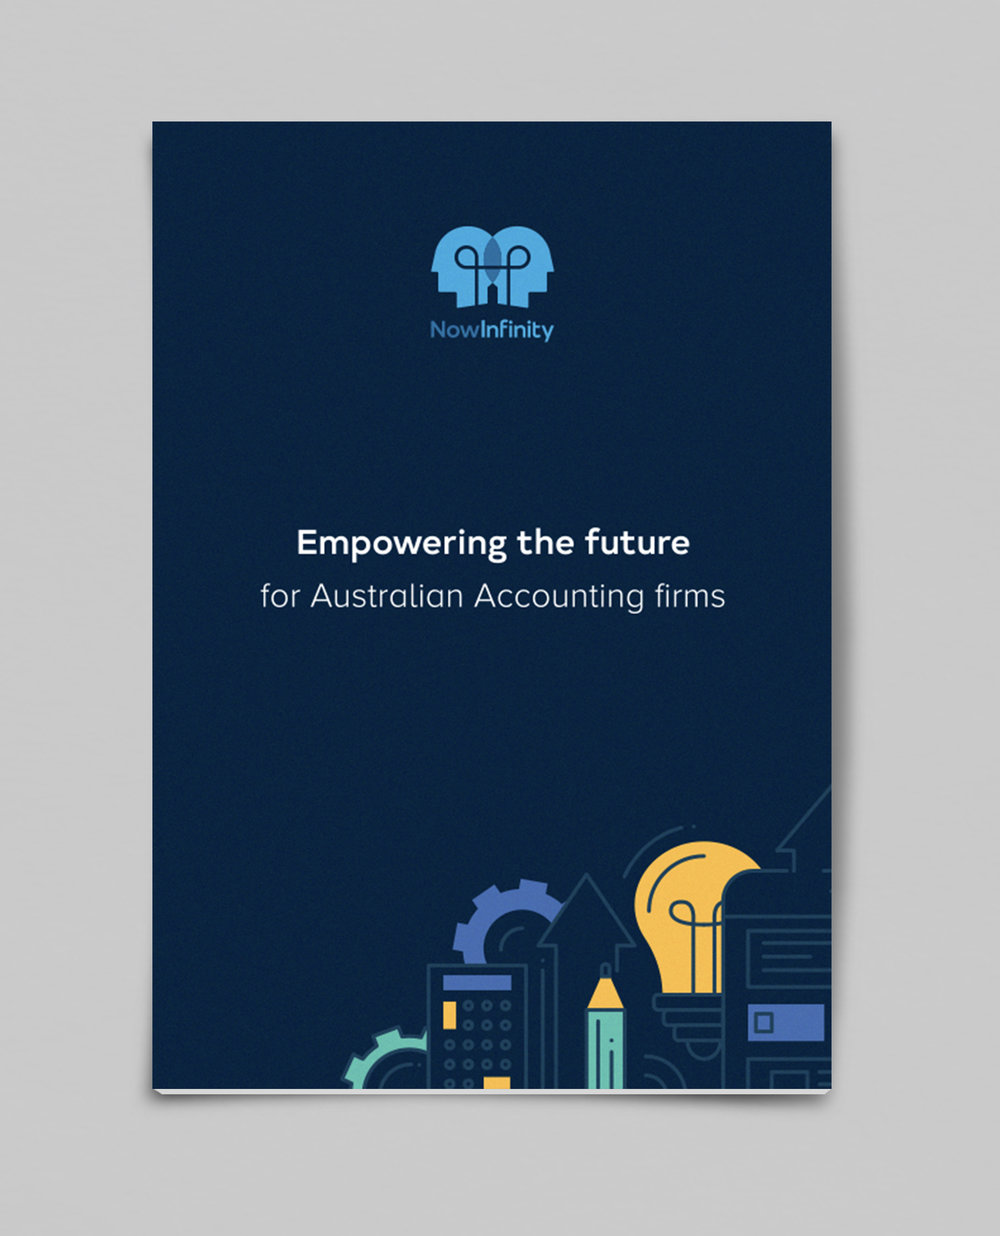 Product booklet cover